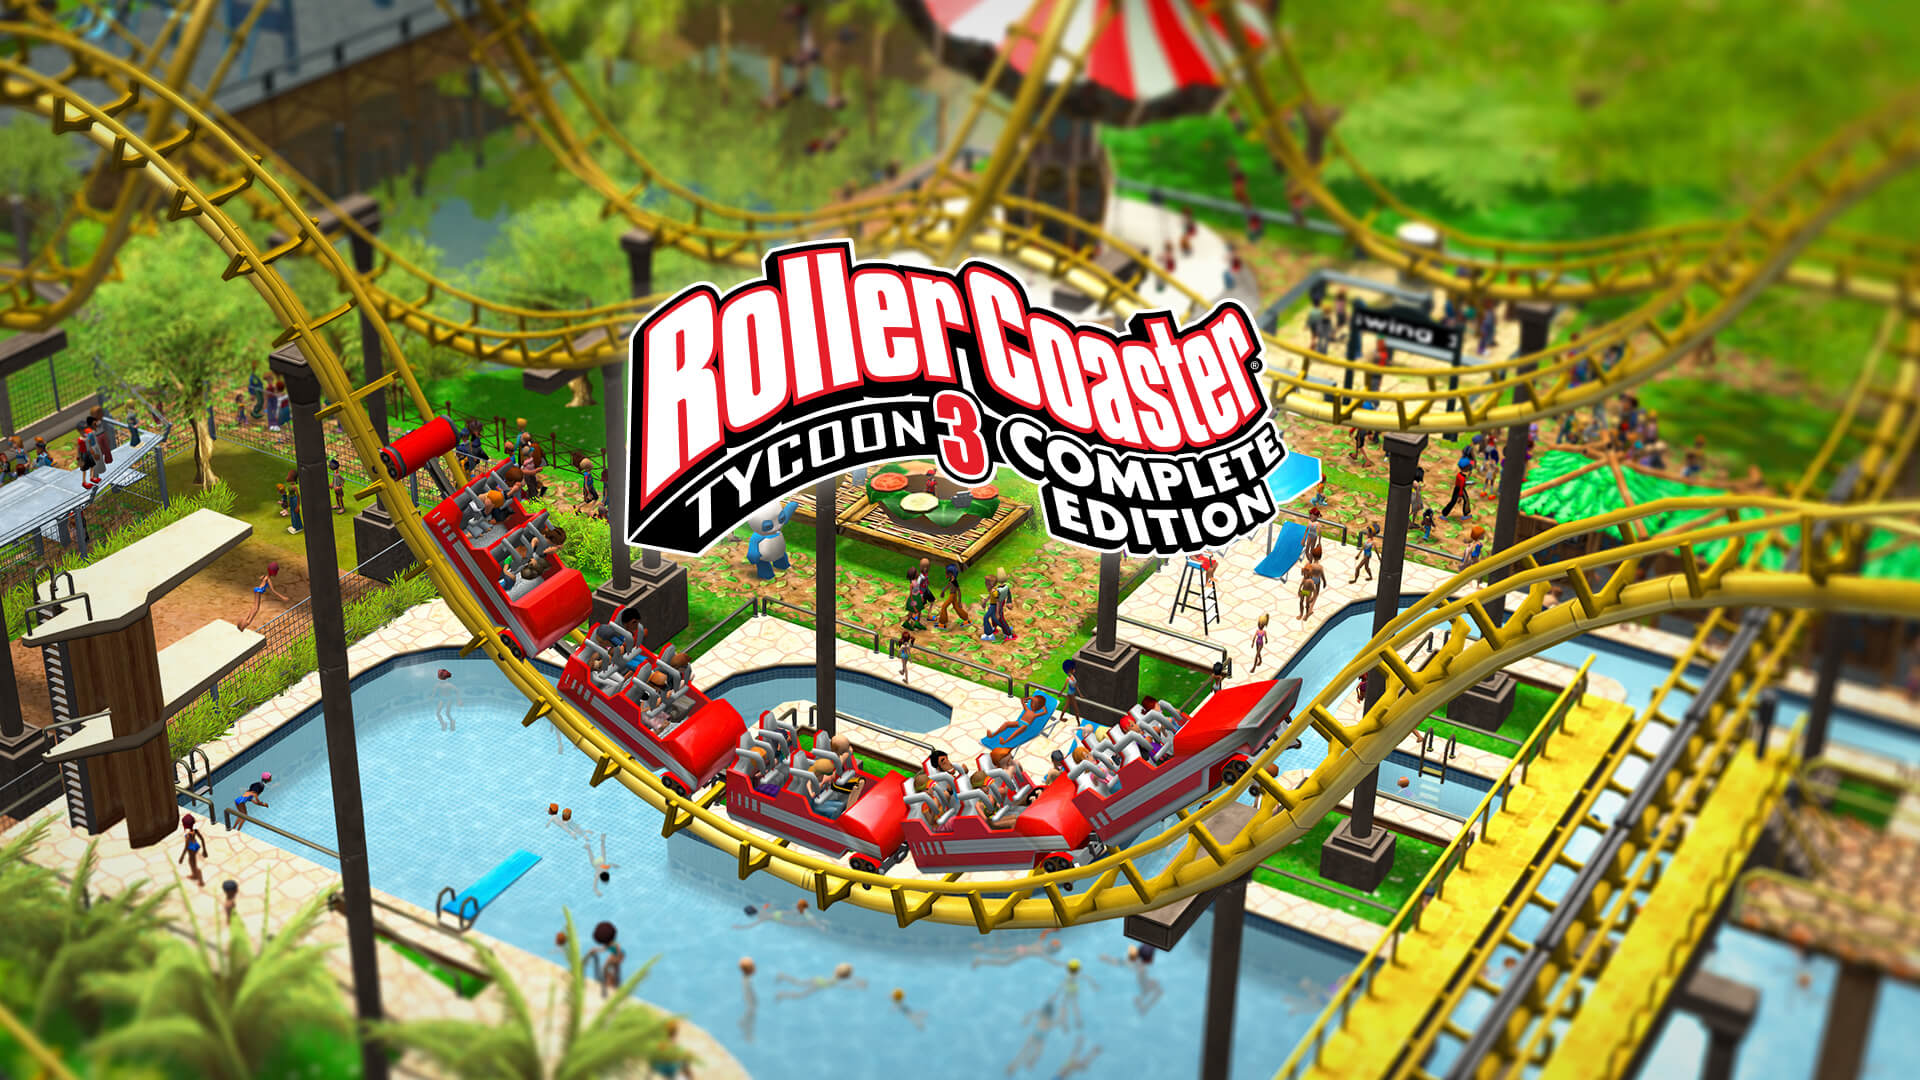 RollerCoaster Tycoon 3: Complete Edition Launches